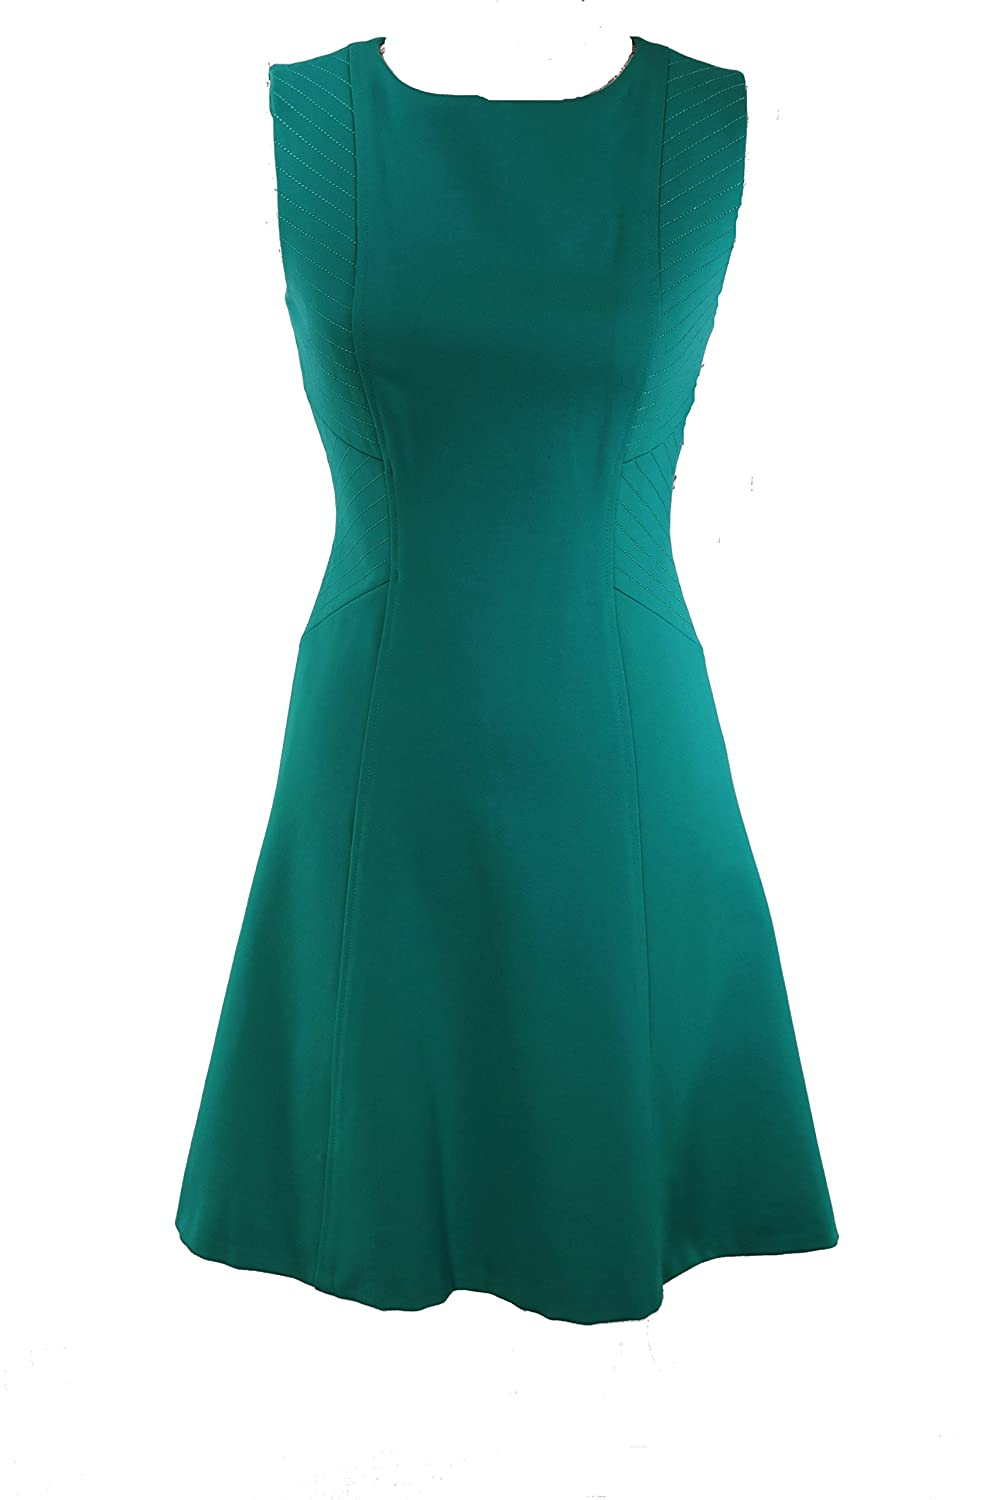 b99fe2b69834 Top 10 wholesale Antonio Melani Dresses - Chinabrands.com